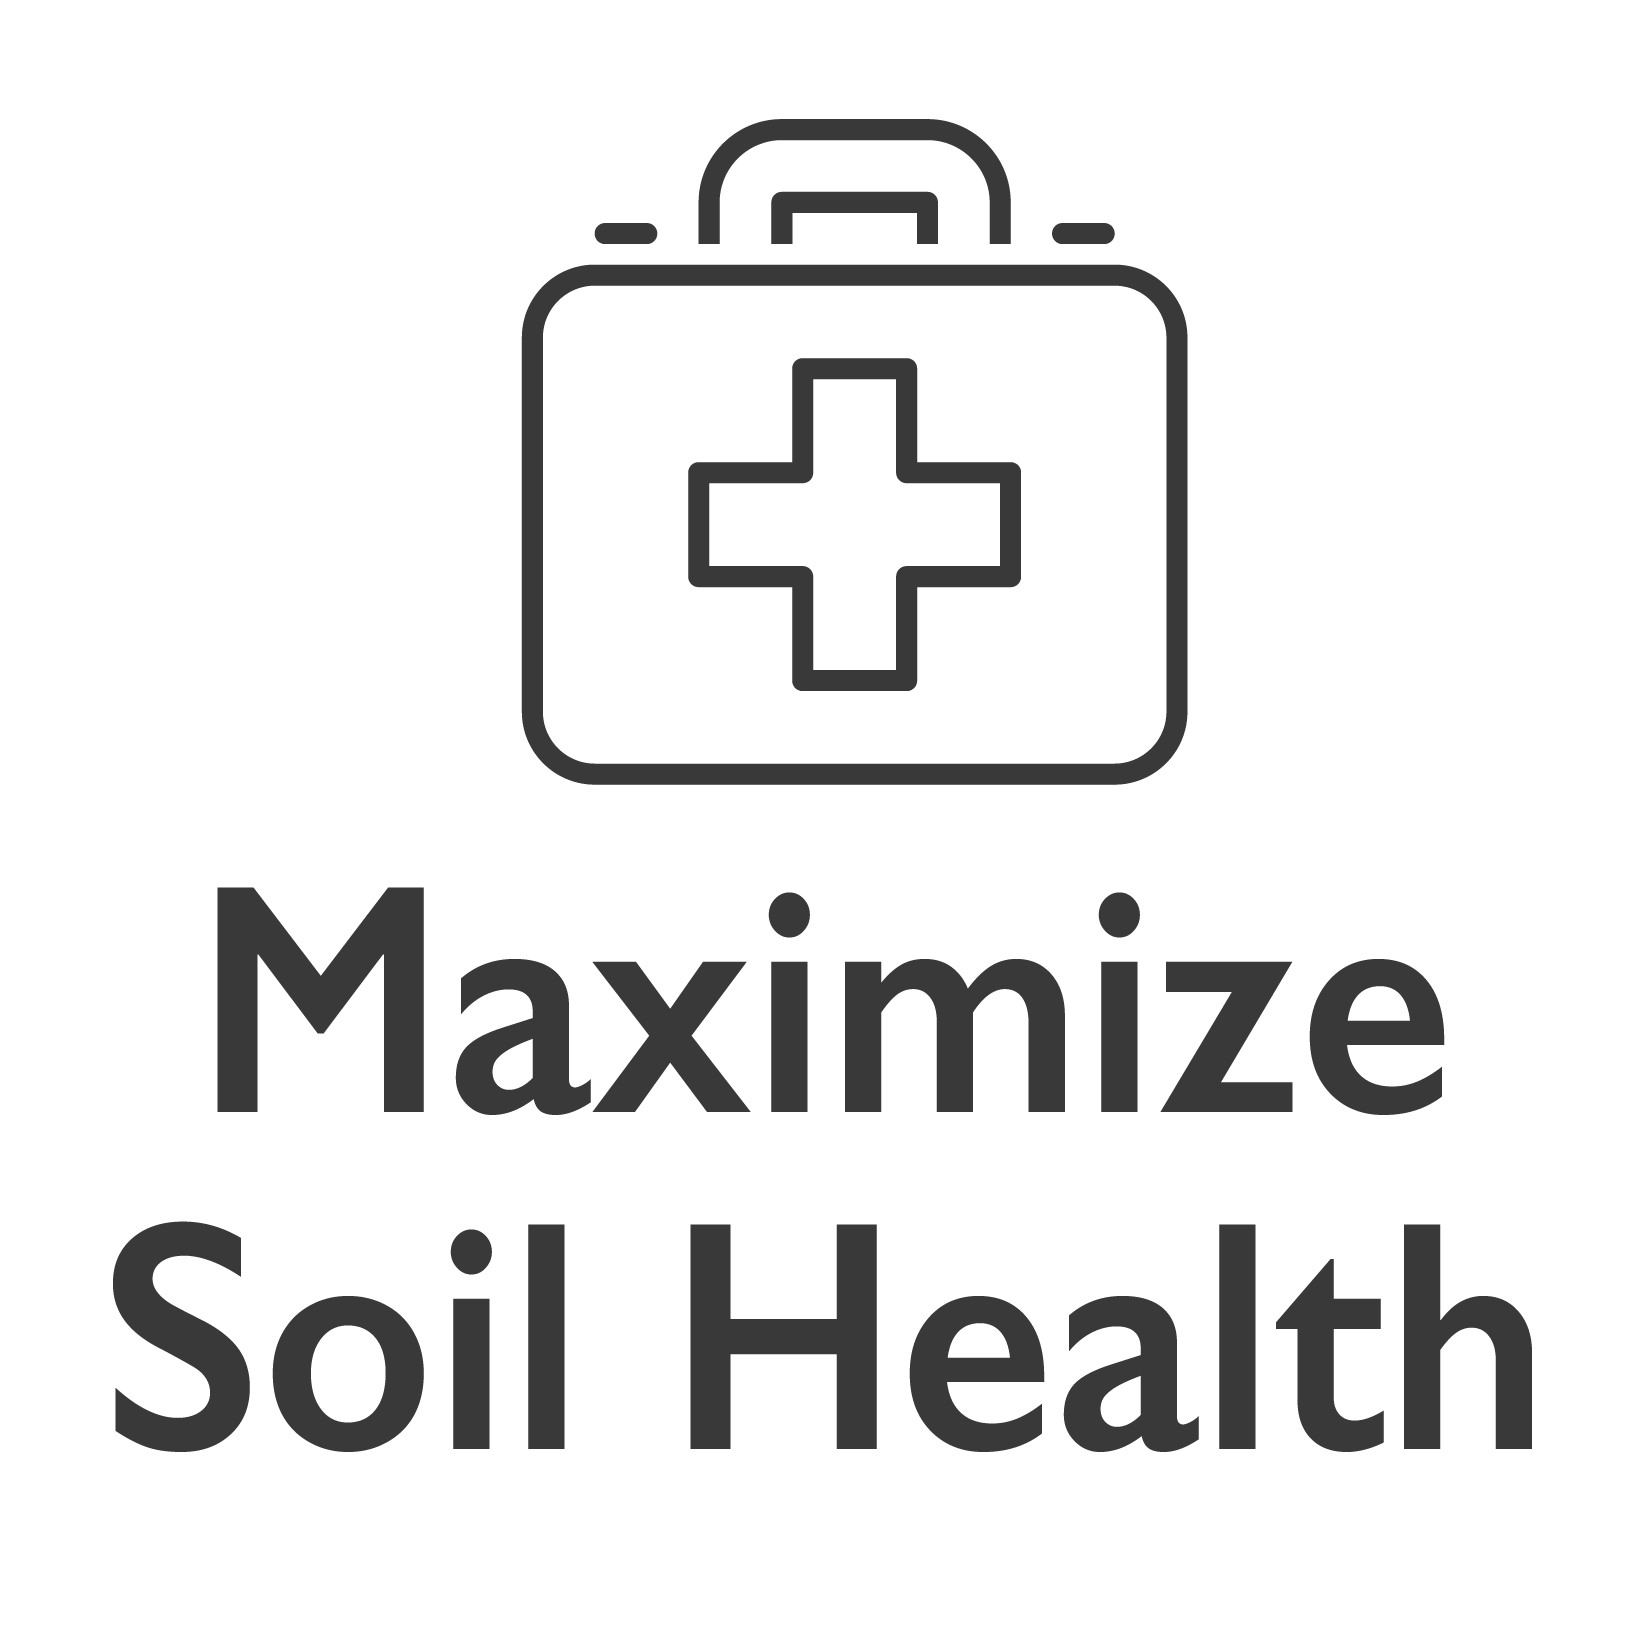 maximize soil health